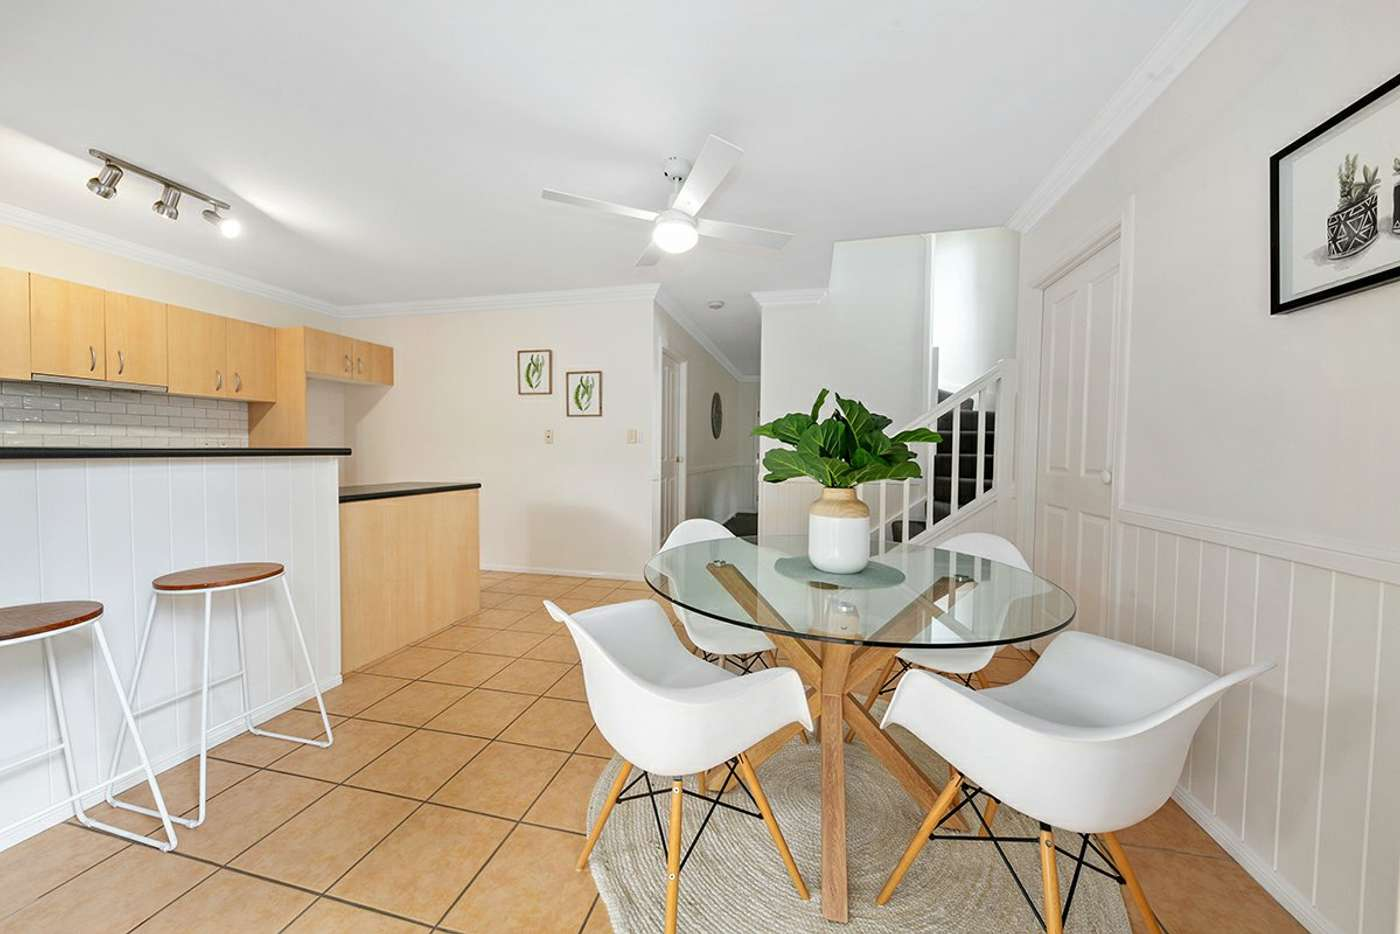 Fifth view of Homely townhouse listing, 3/15 Gustavson Street, Annerley QLD 4103